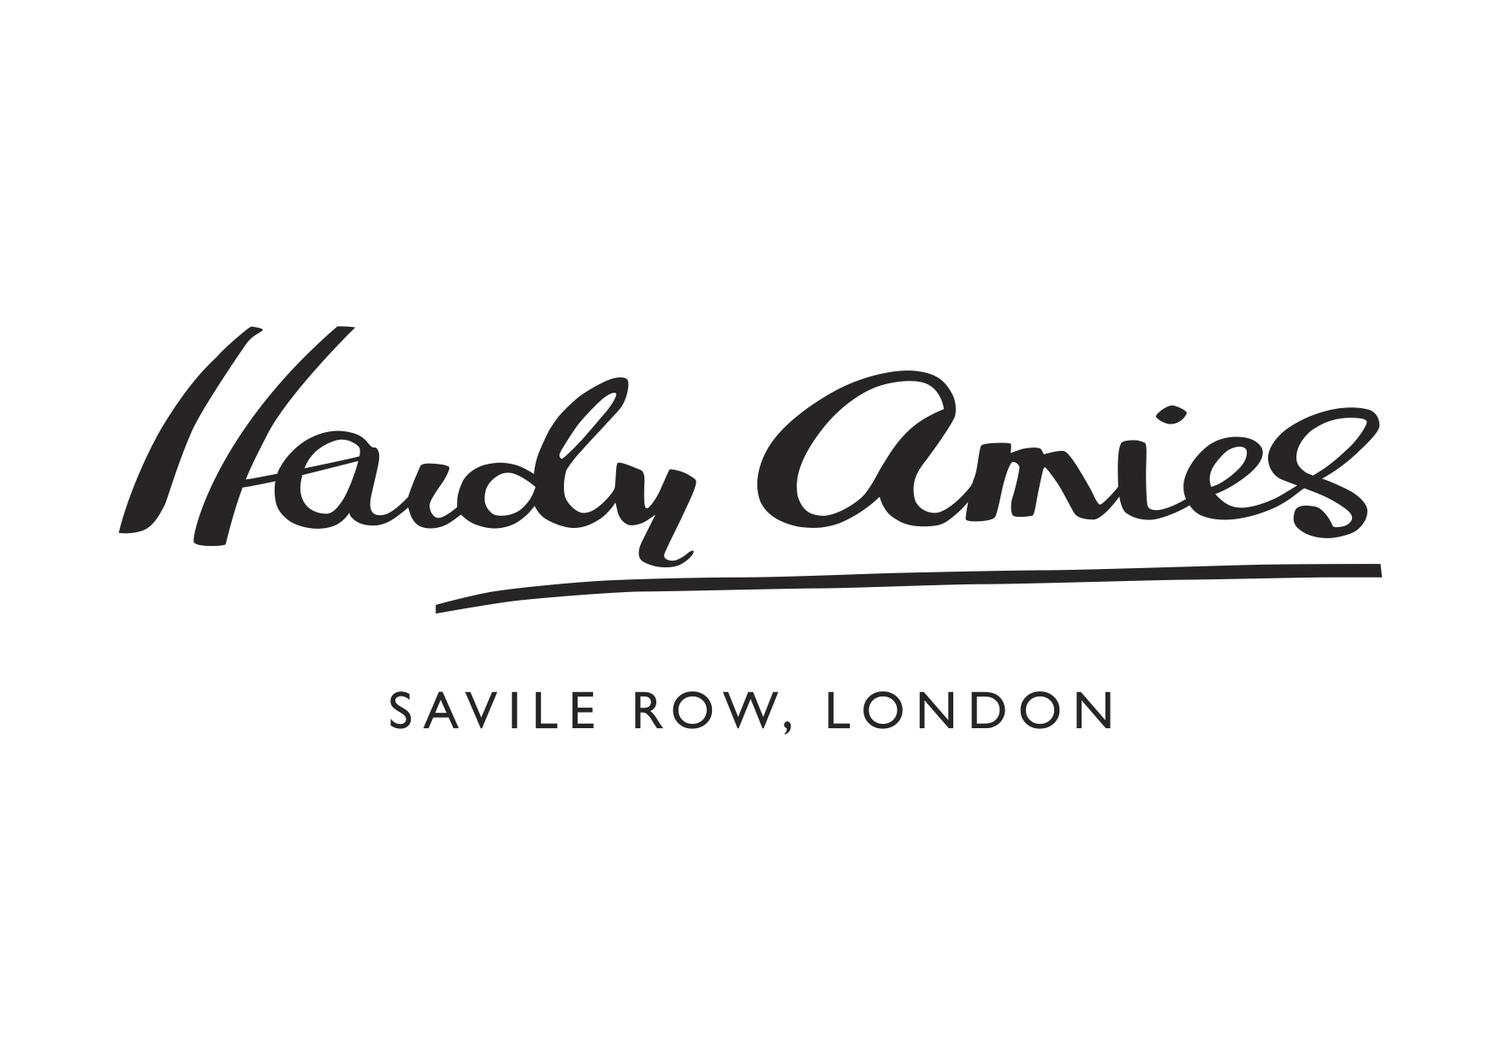 {'liked': 0L, 'description': u' As a Savile Row brand, Hardy Amies comes from the home of tailoring and is informed by an impressive heritage. And yet, Sir Hardy himself was a new figure on the \u2018Row\u2019 in the Forties, not encumbered with years of historical baggage.', 'fcount': 1, 'logo': u'https://d1lq6ohuxk085y.cloudfront.net/designer/HARDY-AMIES-1489730629', 'viewed': 1310L, 'category': u'c', 'name': u'HARDY AMIES', 'url': 'HARDY-AMIES', 'locname': u'HARDY AMIES', 'mcount': 242, 'haswebsite': True}